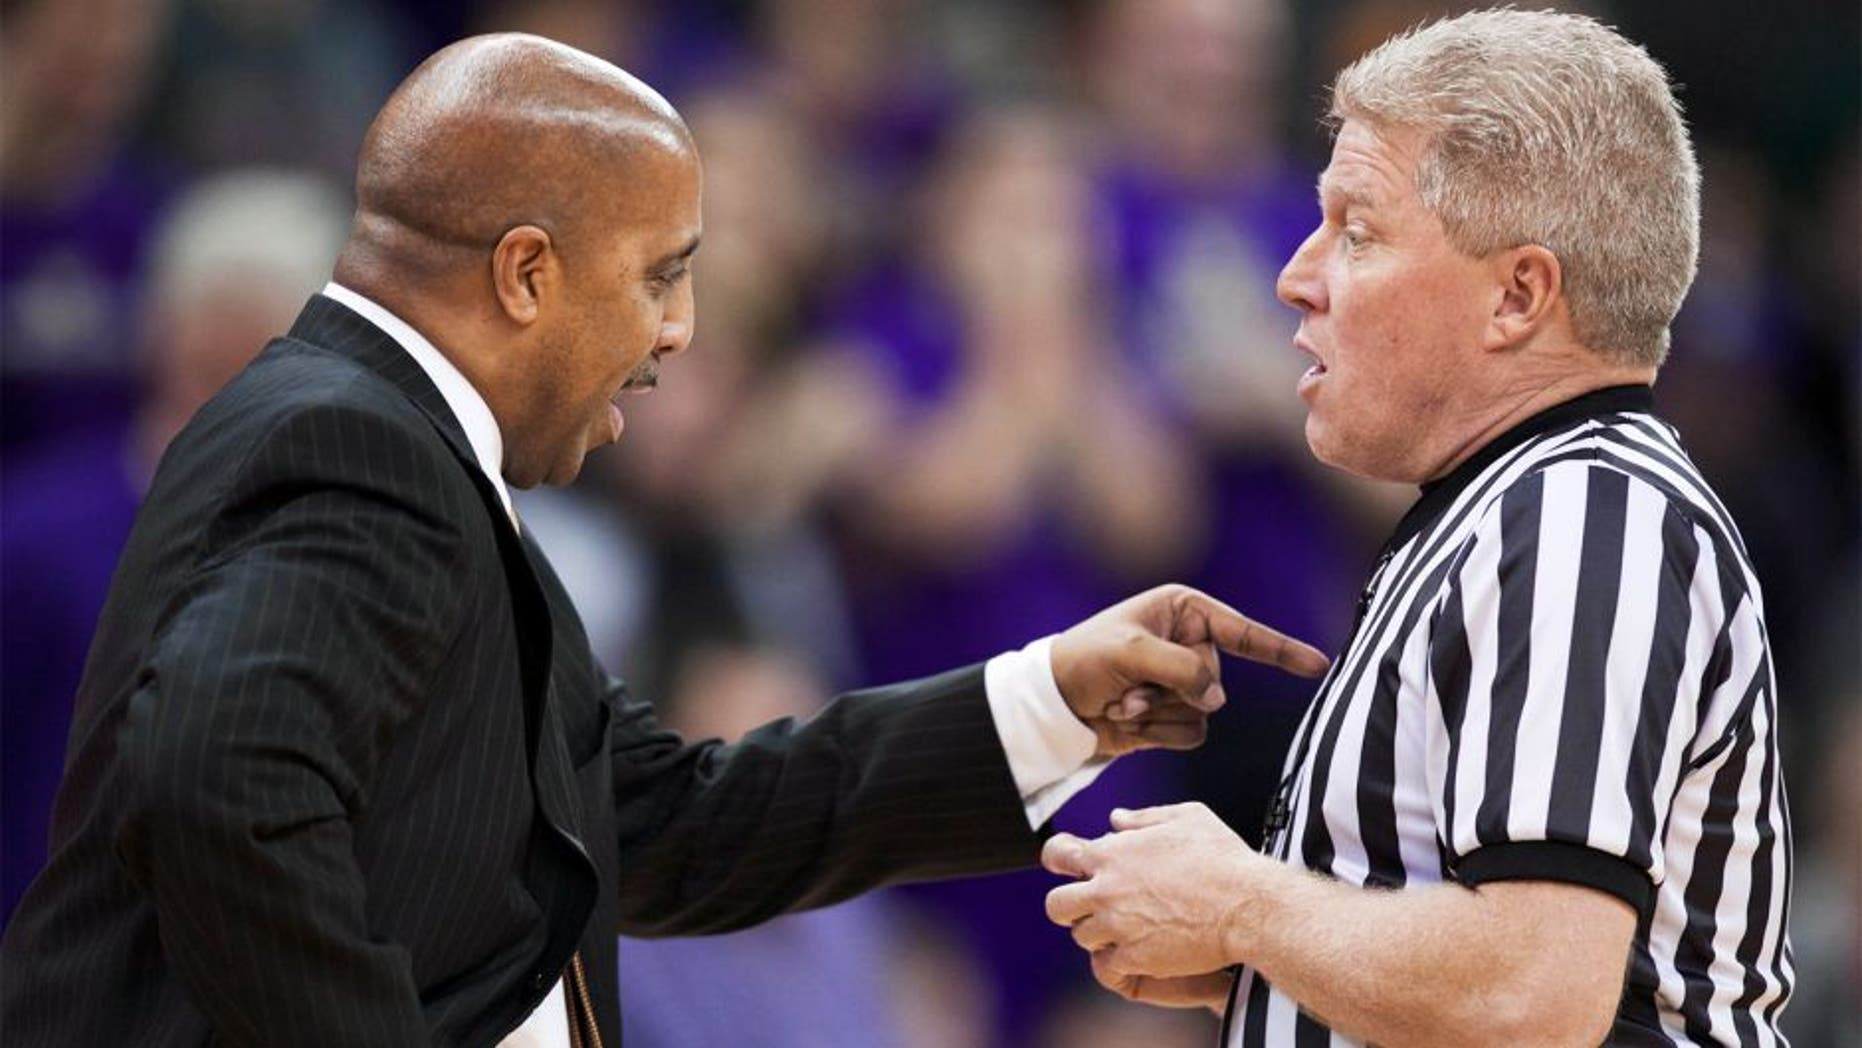 Washington head coach Lorenzo Romar, left, disputes a call with an official in the second half of an NCAA college basketball game against UCLA, Thursday March 6, 2014, in Seattle. UCLA won 91-82. (AP Photo/Stephen Brashear)